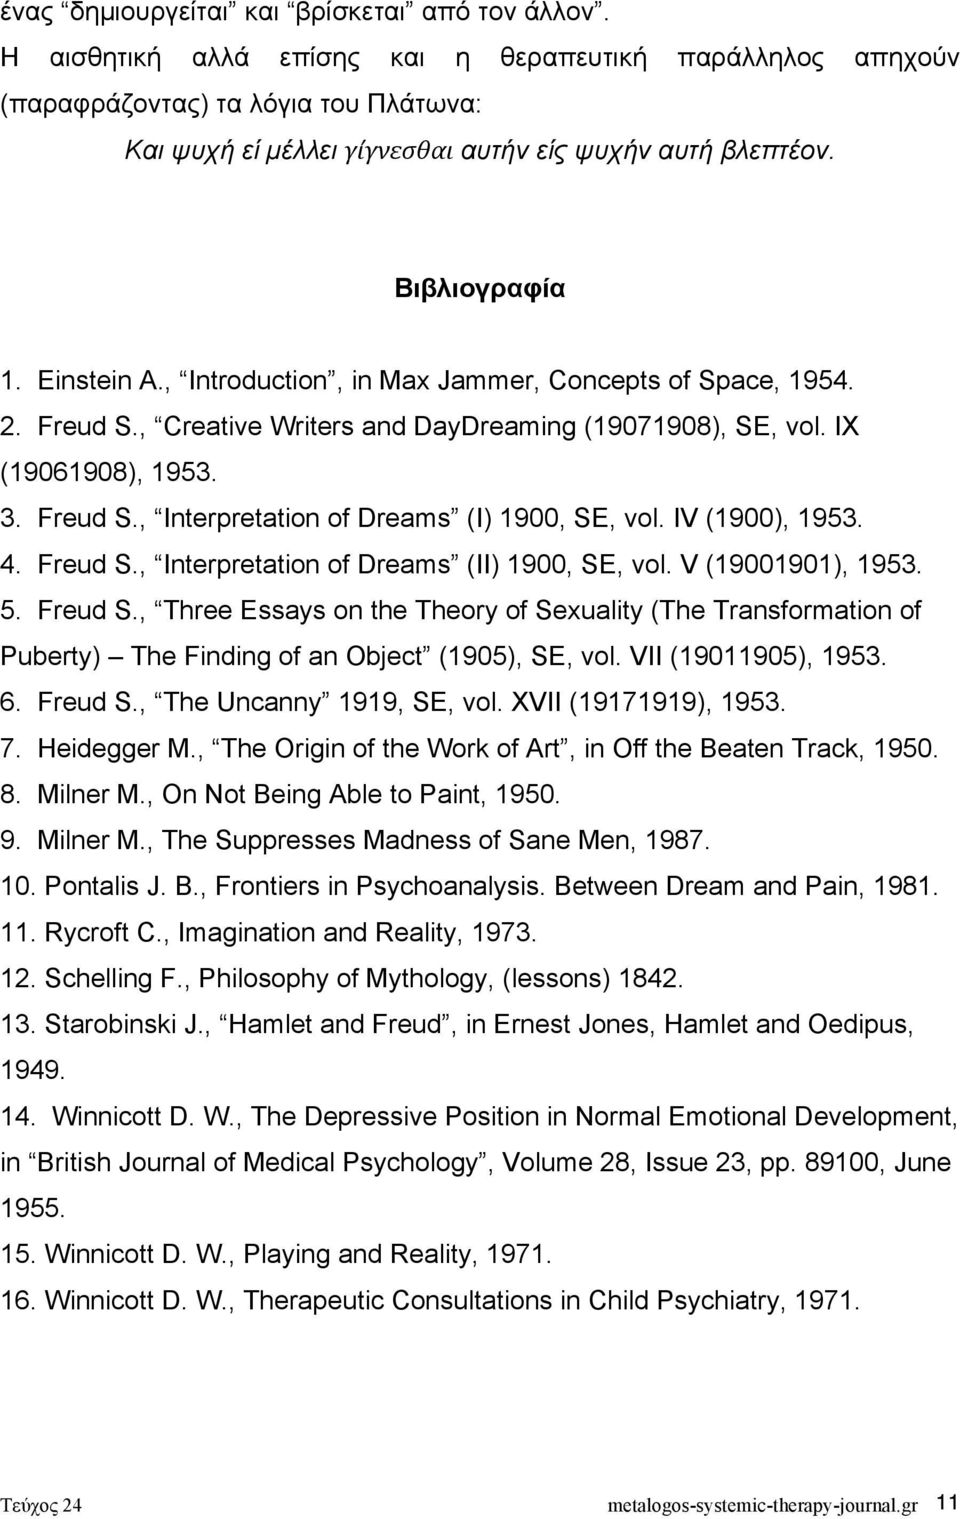 , Introduction, in Max Jammer, Concepts of Space, 1954. 2. Freud S., Creative Writers and DayDreaming (19071908), SE, vol. IX (19061908), 1953. 3. Freud S., Interpretation of Dreams (I) 1900, SE, vol.